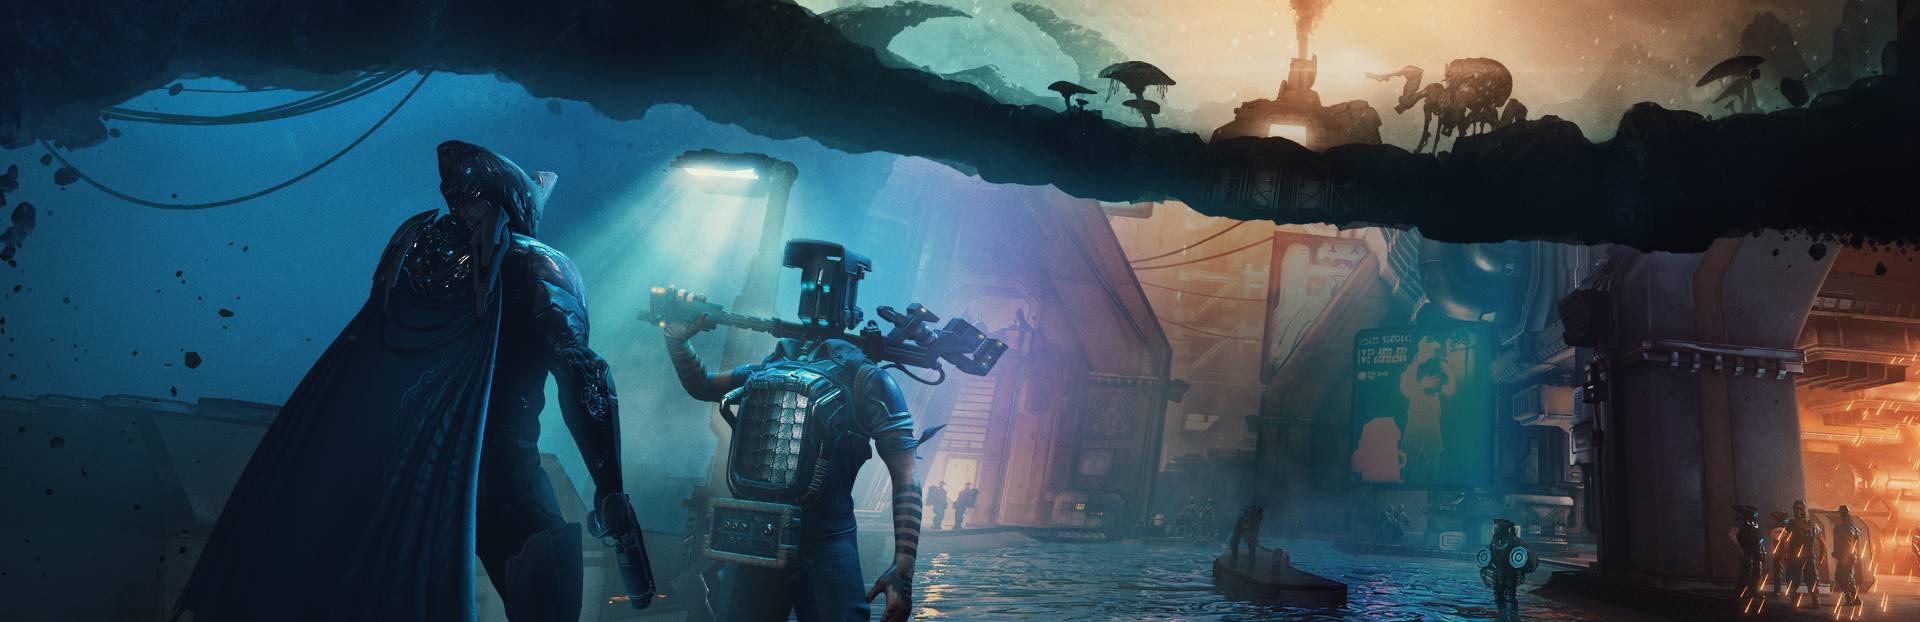 Fortuna Introduces A Vast Frigid Venus Wasteland Populated With Specialized Corpus Units An Alien Ecosystem And Subterranean Mysteries